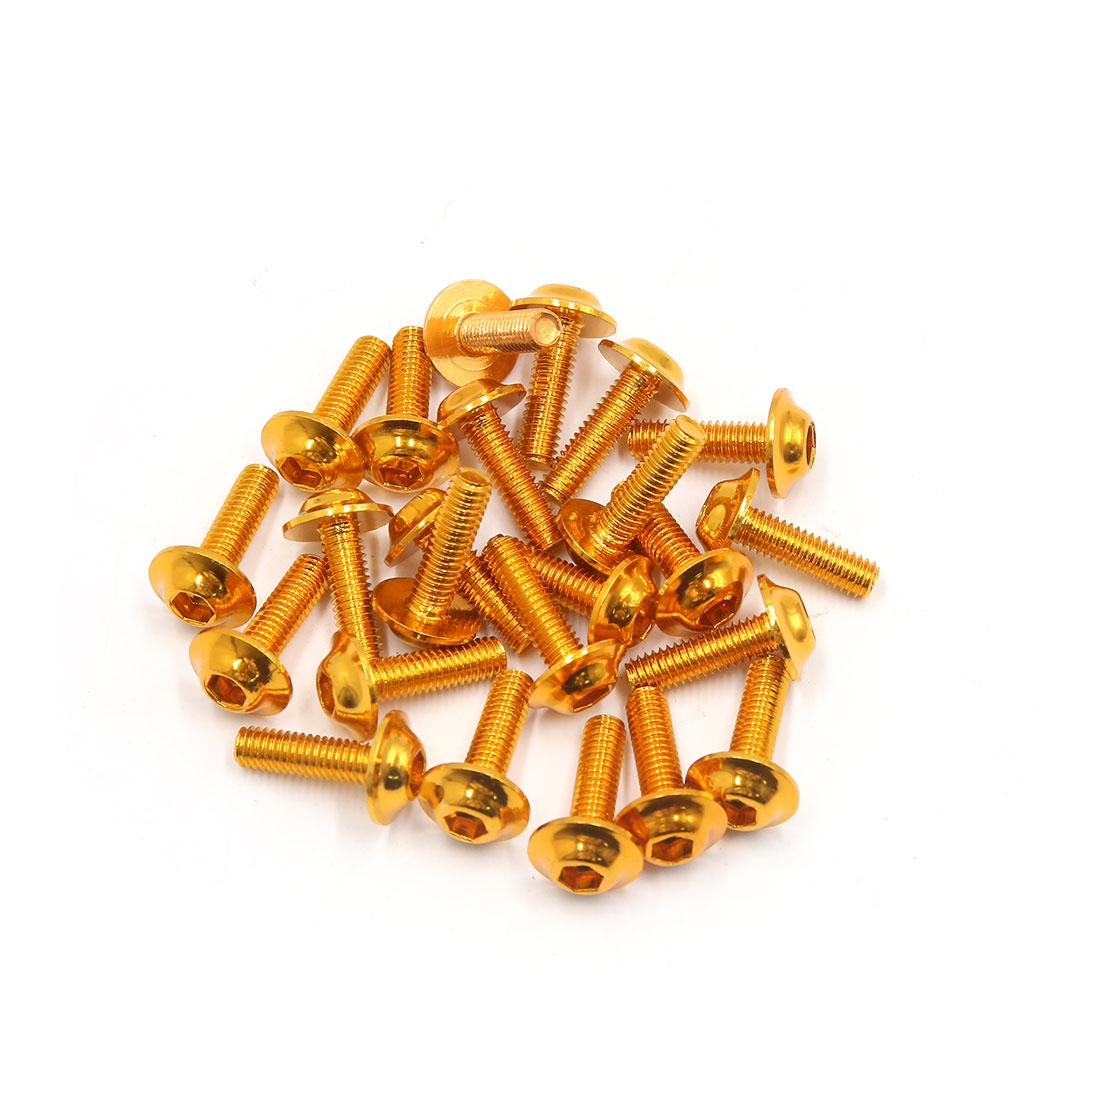 24 Pcs Gold Tone 6mm Thread Dia Aluminum Alloy Fairing Hexagon Bolts Screws for Motorcycle